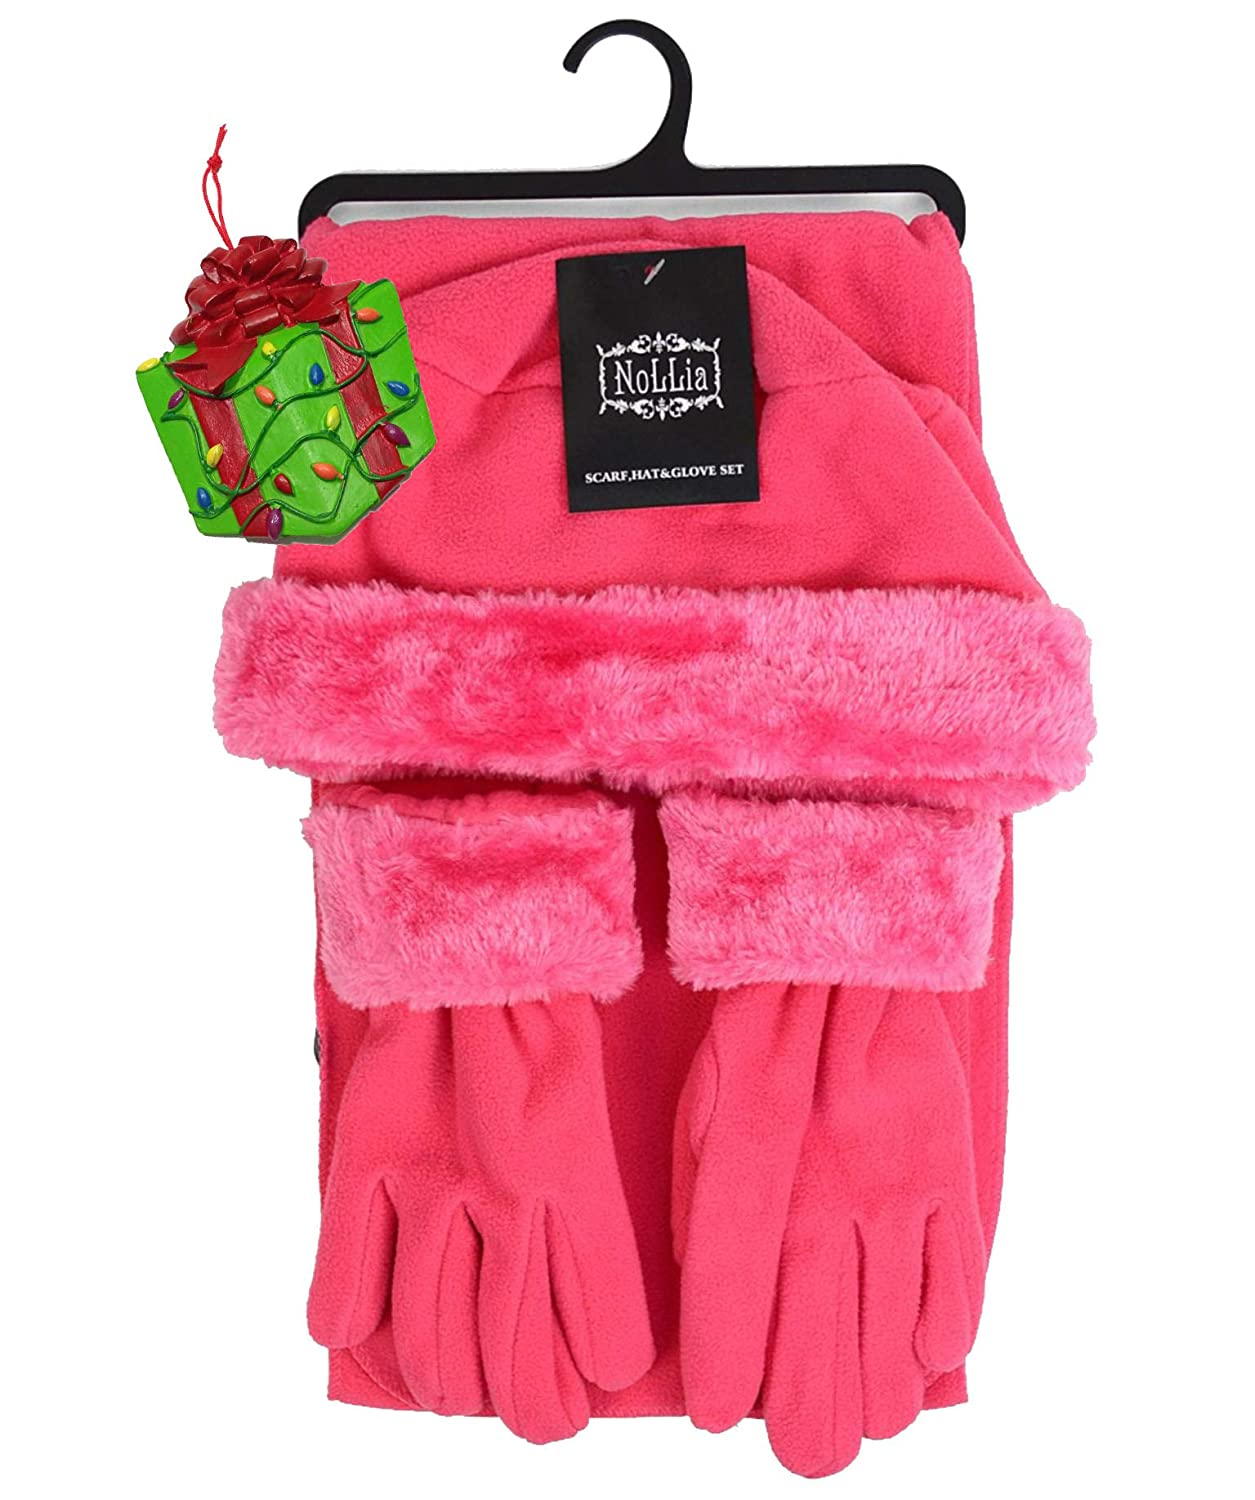 Girls Pink Fleece Winter Outerwear Gift Set - Scarf, Gloves, Hat & Bonus Tree Ornament